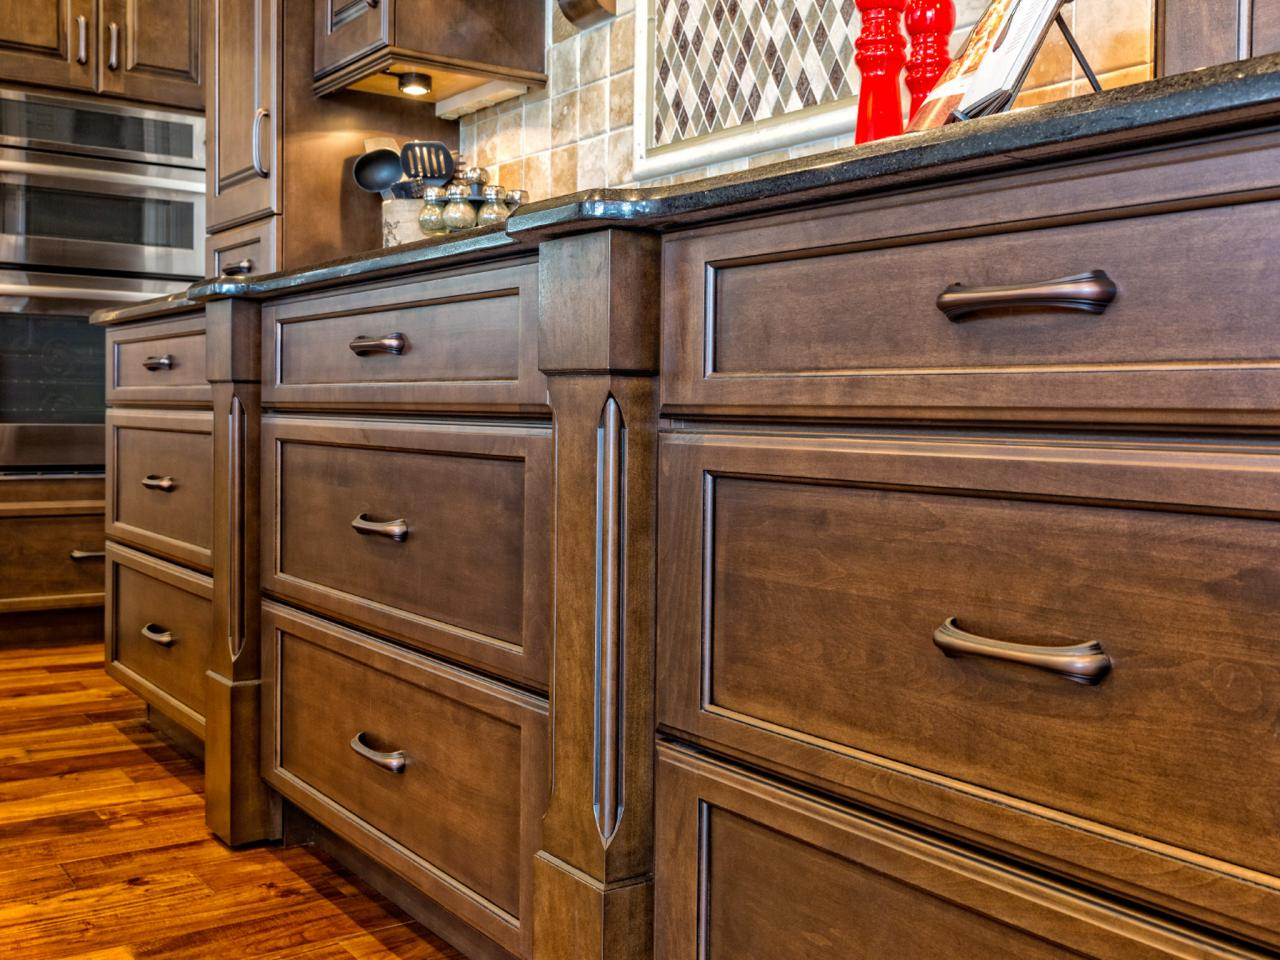 Types of wood cabinets to choose from